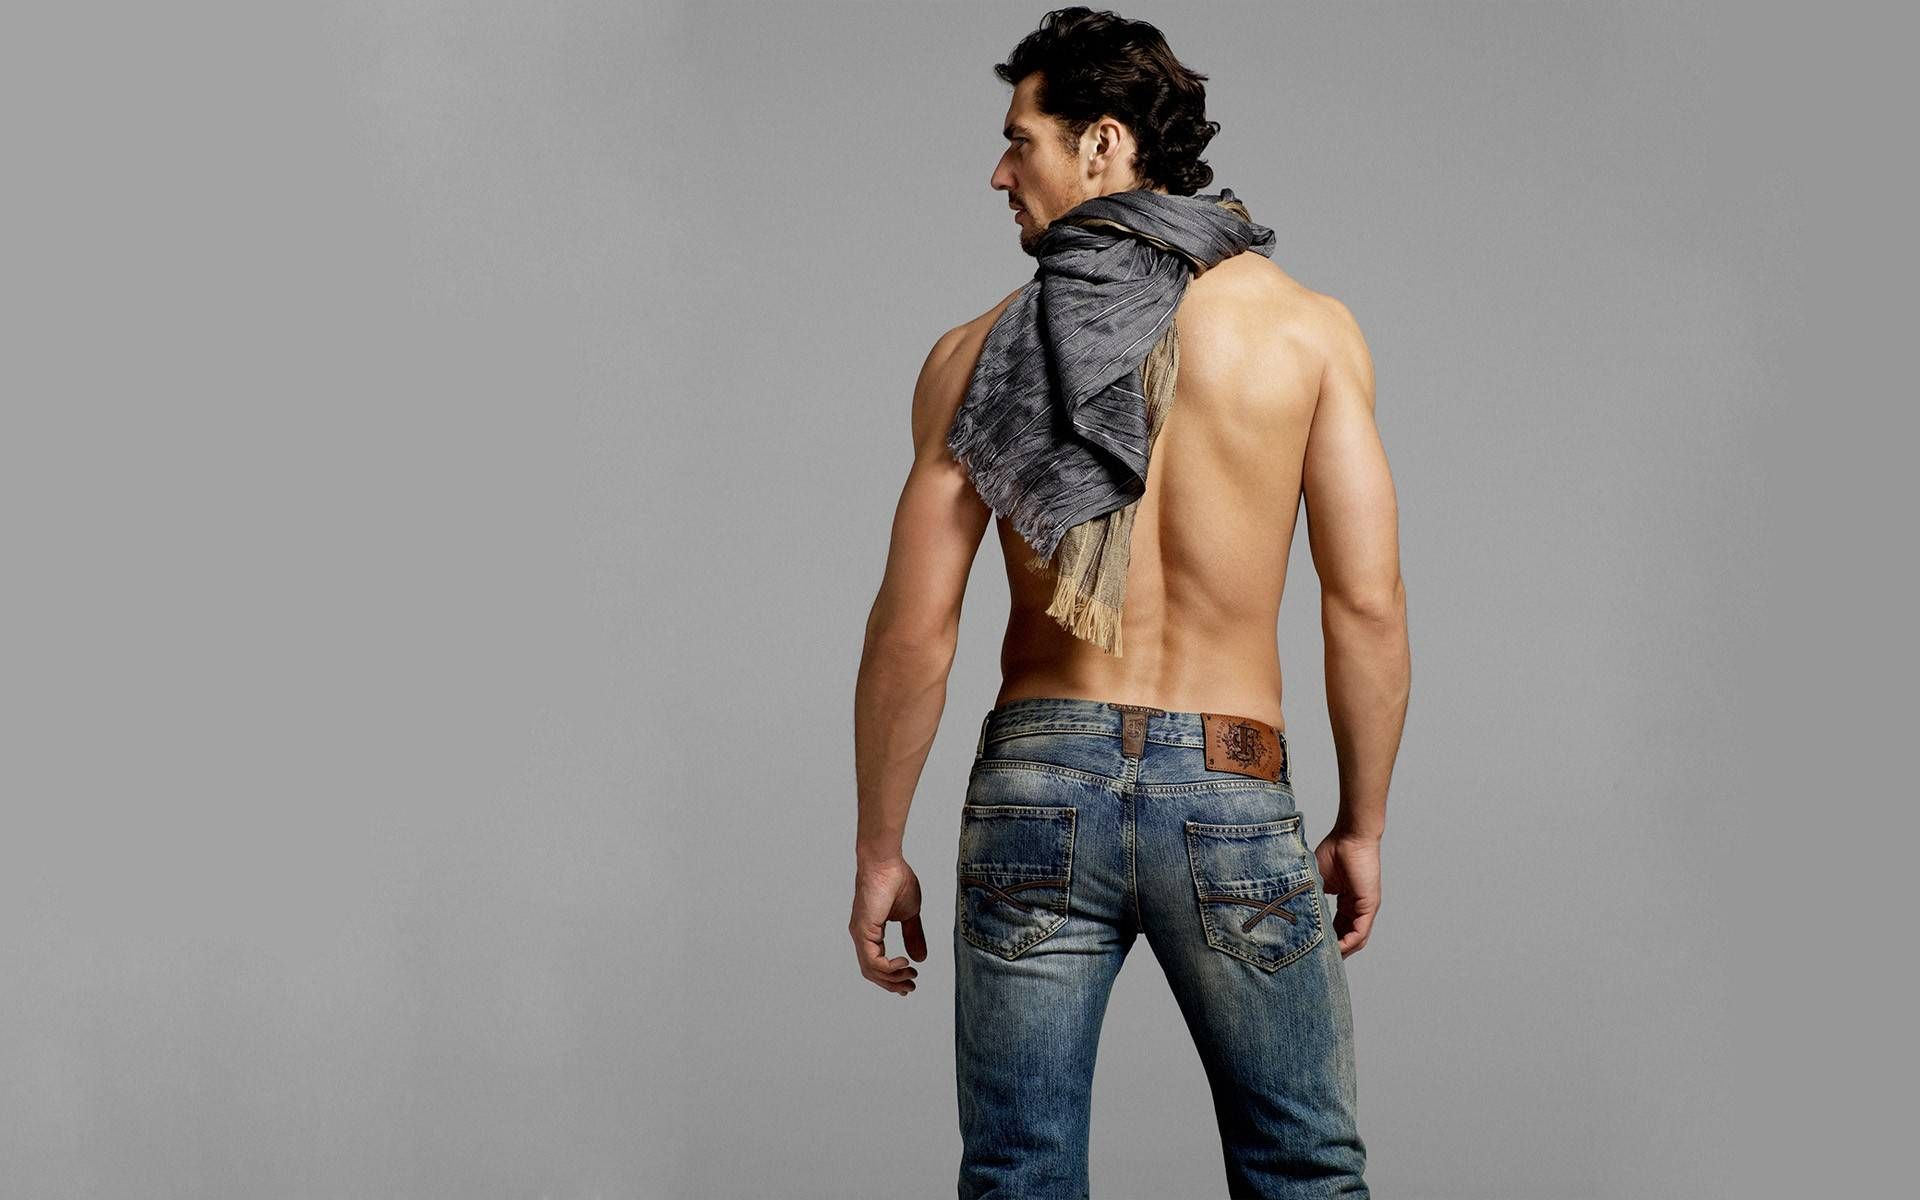 men jeans wallpaper - Buscar con Google